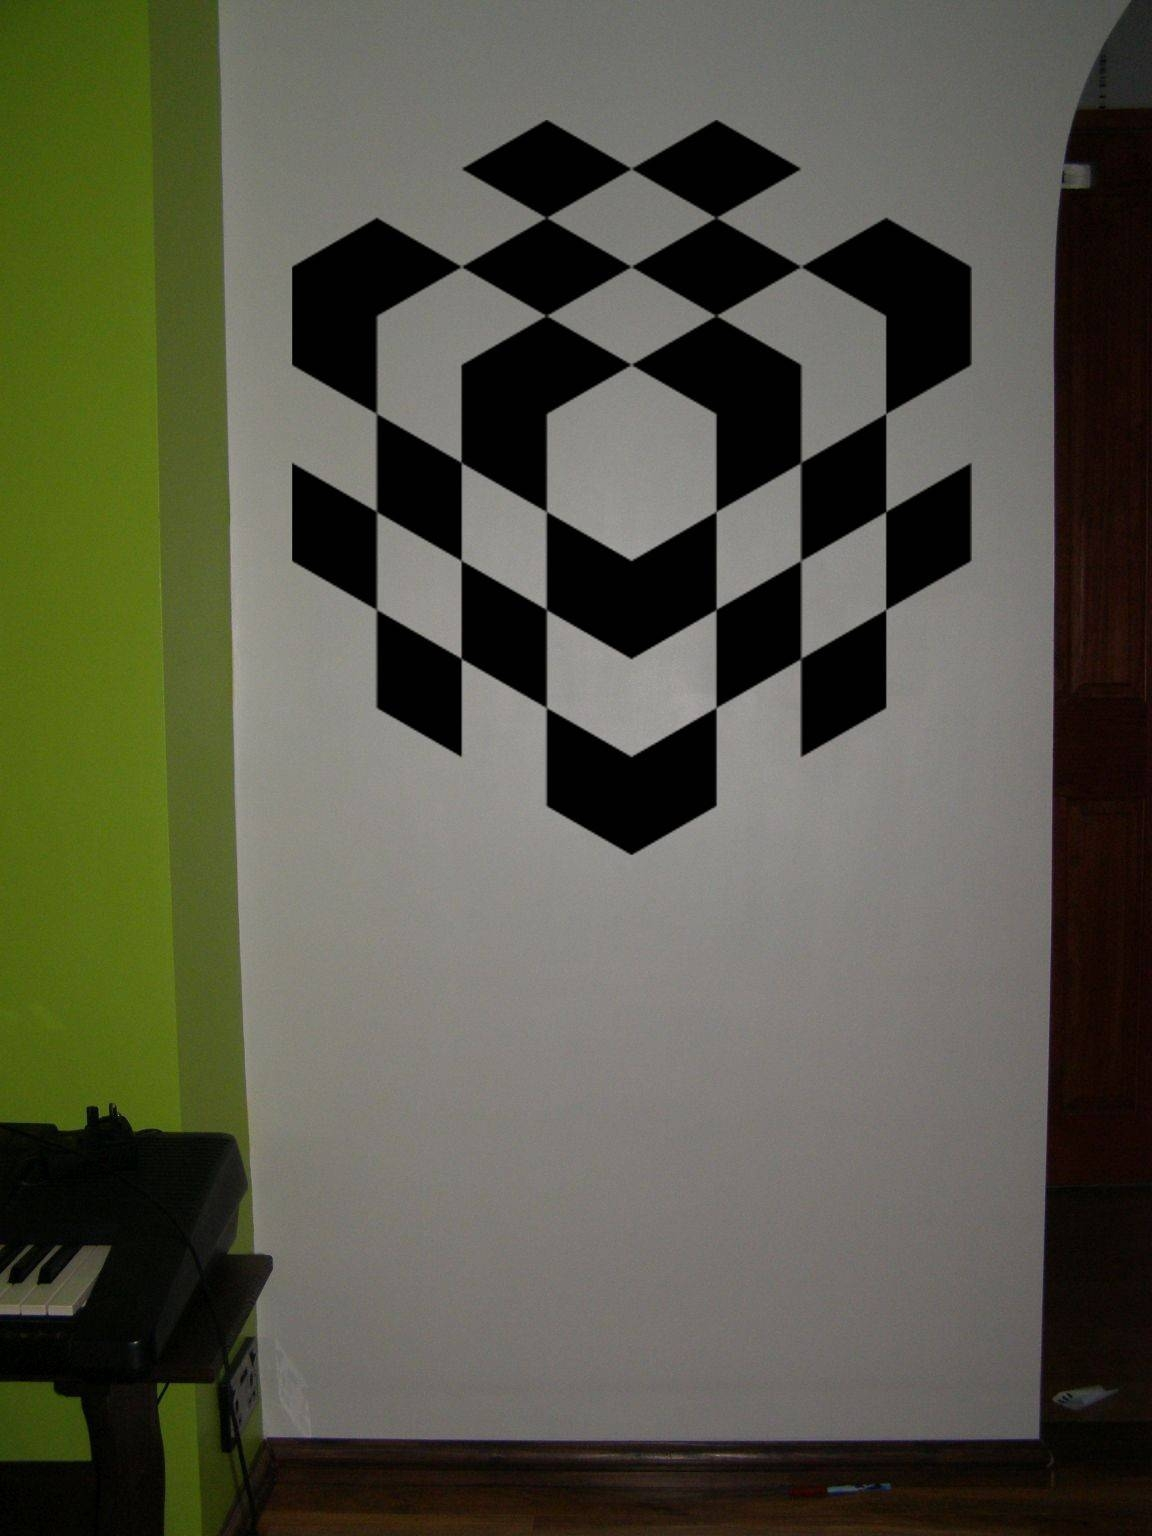 3D Chess Cube Wall Art Sticker. With Latest Cubes 3D Wall Art (Gallery 8 of 20)